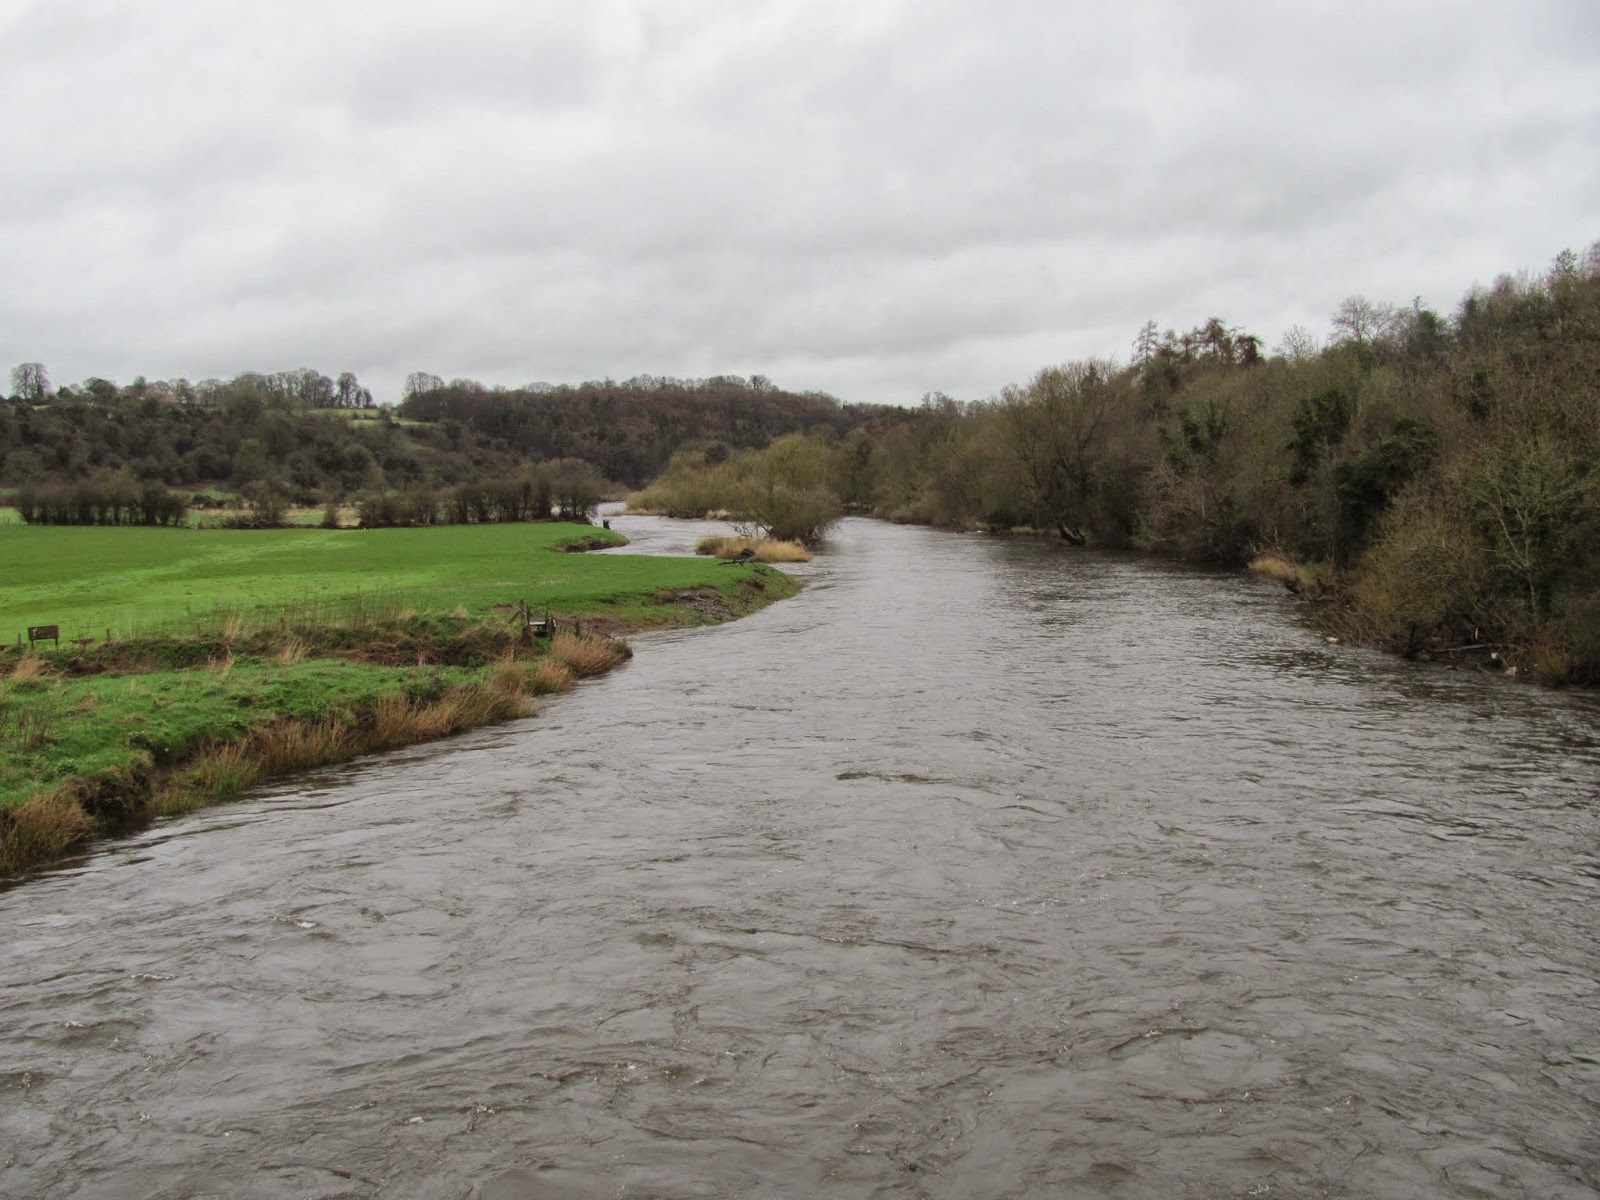 River Boyne Co. Meath, Ireland